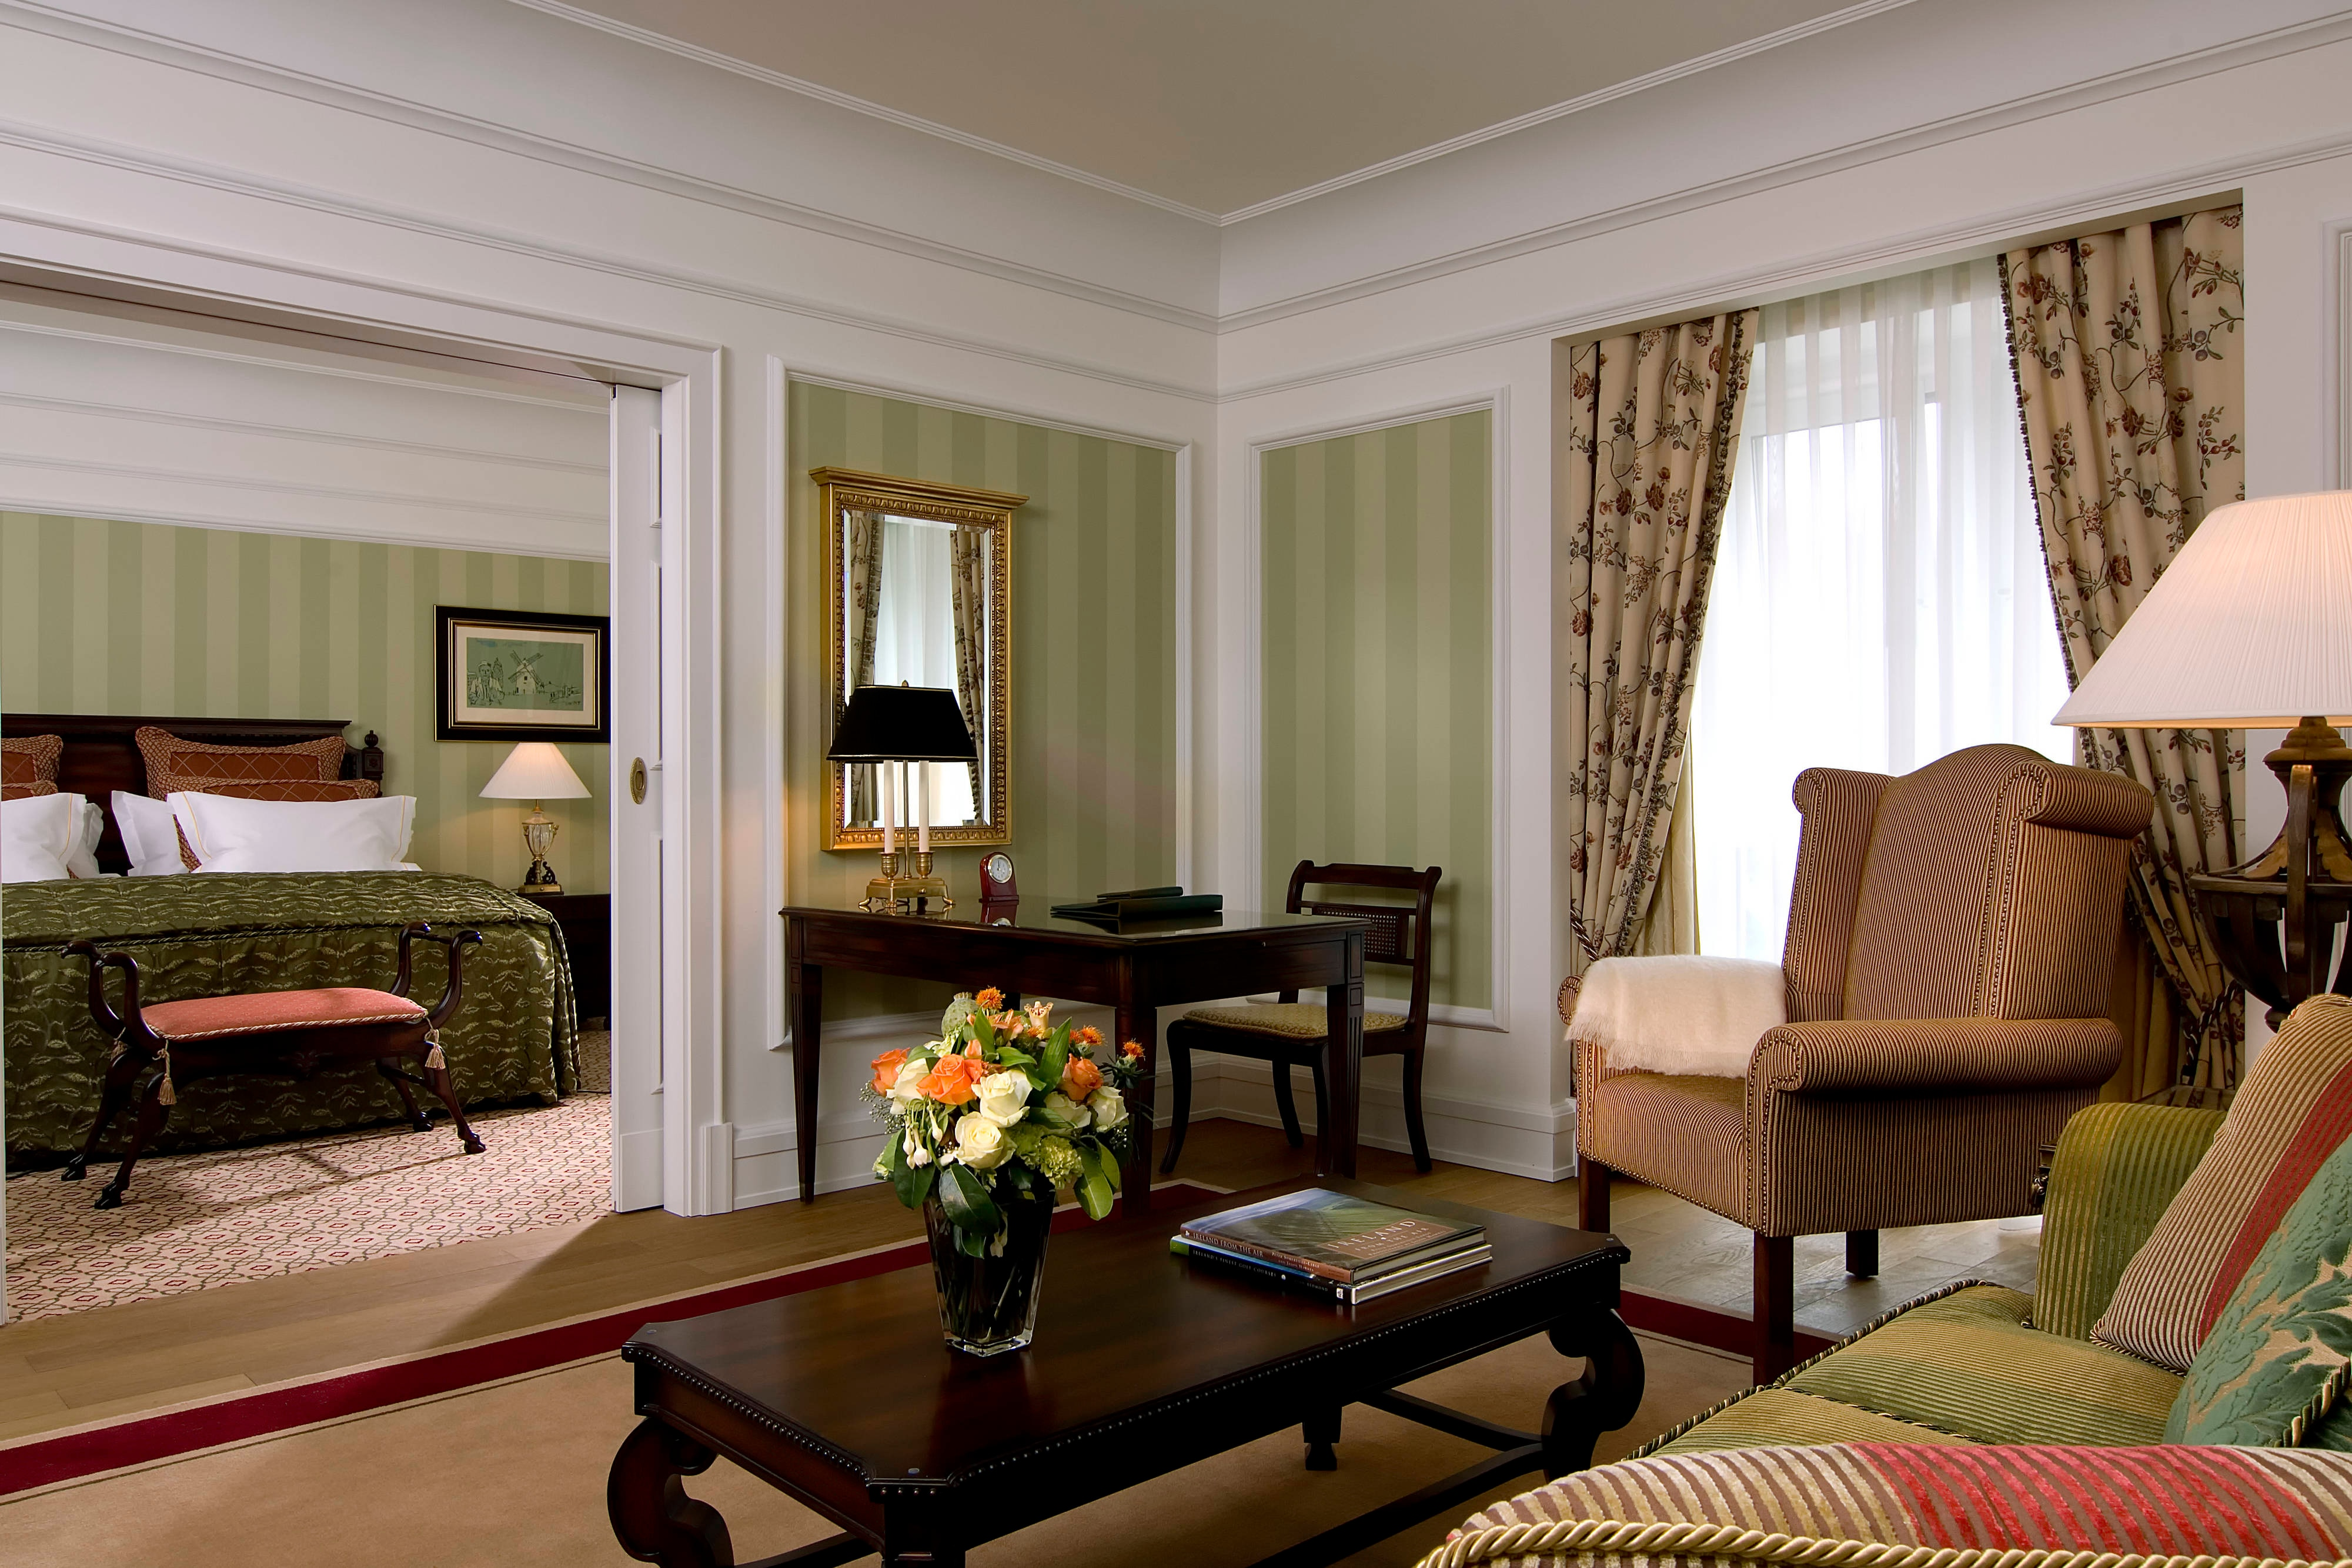 Hotel suite in Wicklow County